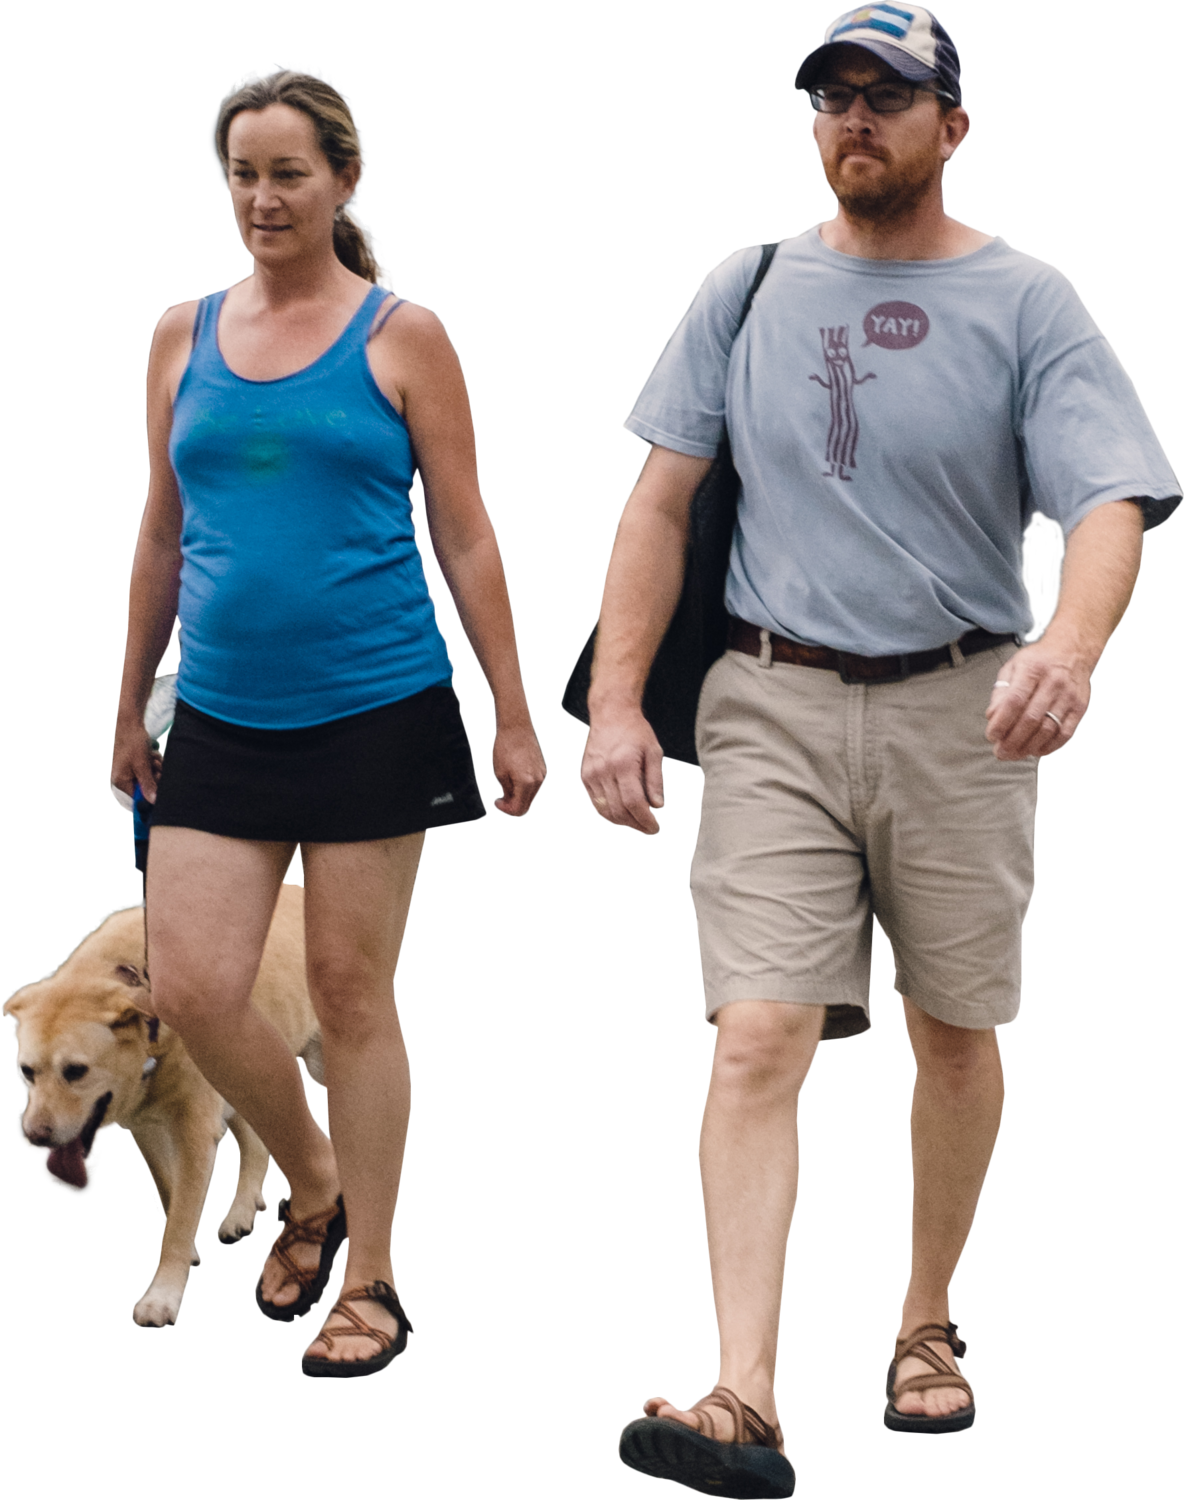 Manandwomanwalkingdogfront